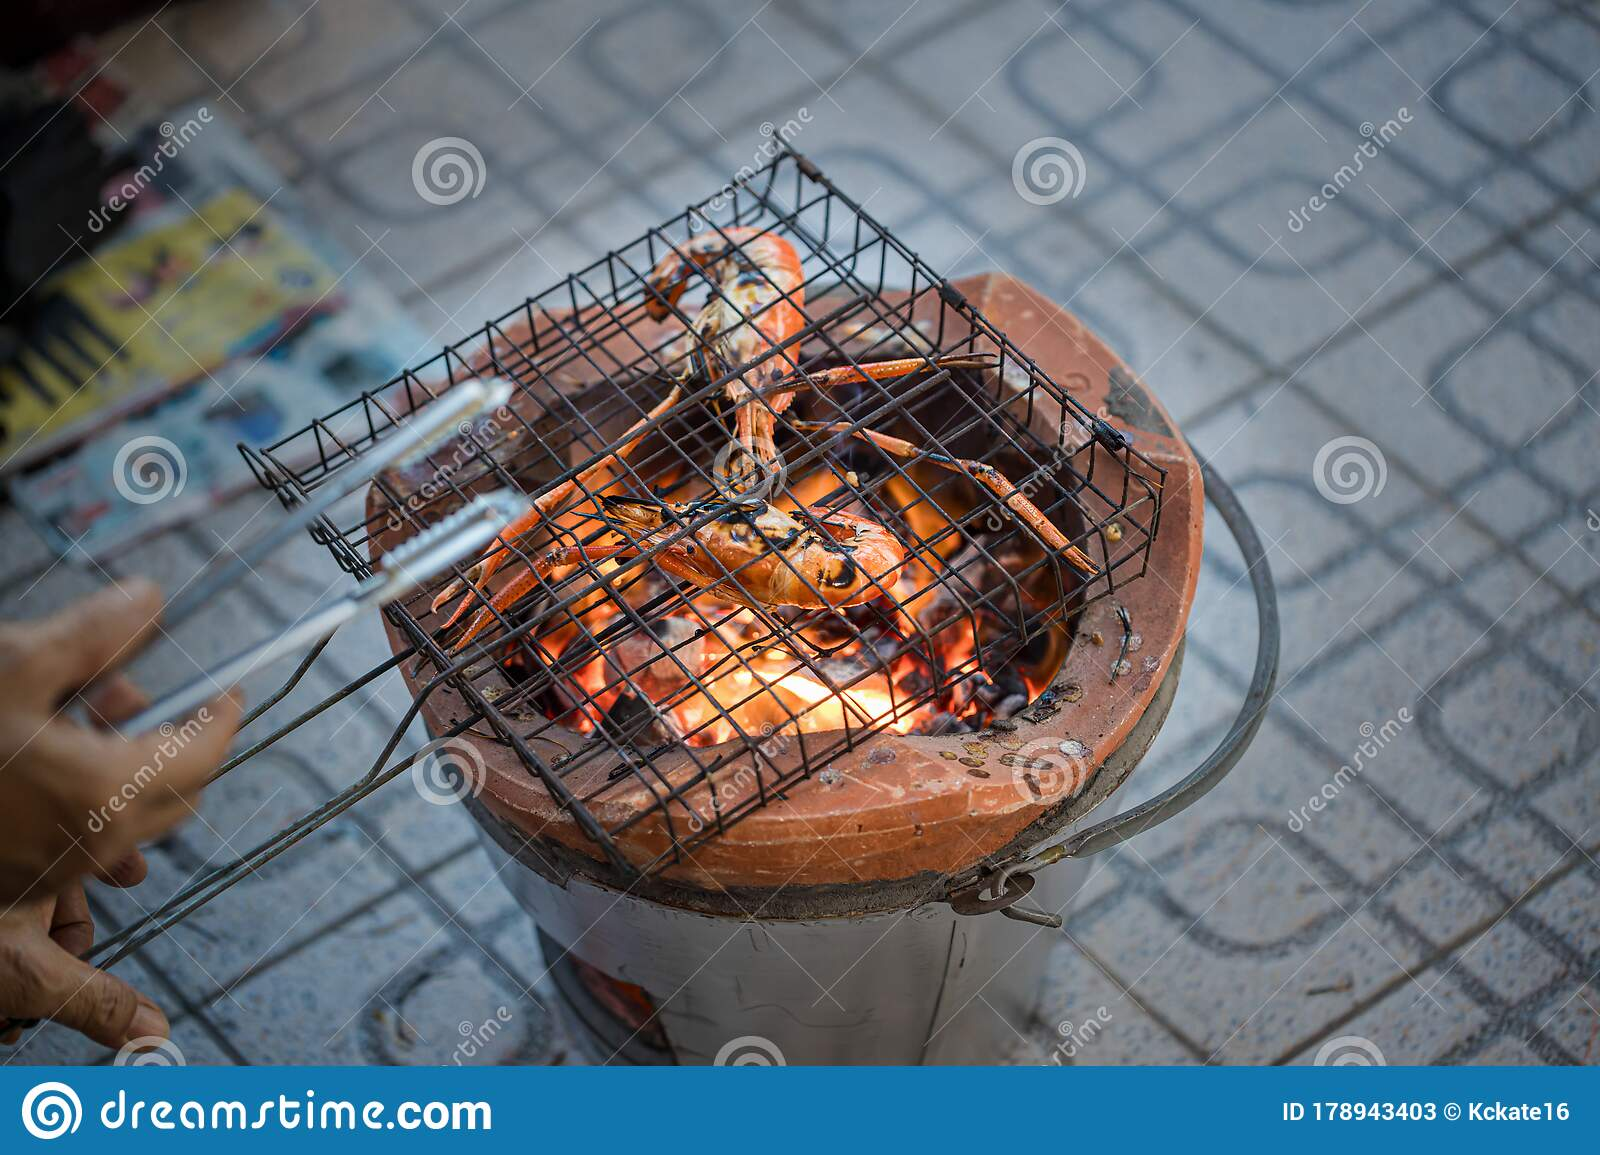 Thai River Prawns Grilled Over Charcoal Grill Grilled On A Bbq Thai Iron Grill Giant Grilled Lobster Cook On Charcoal Stove At T Stock Image Image Of Gourmet Dinner 178943403